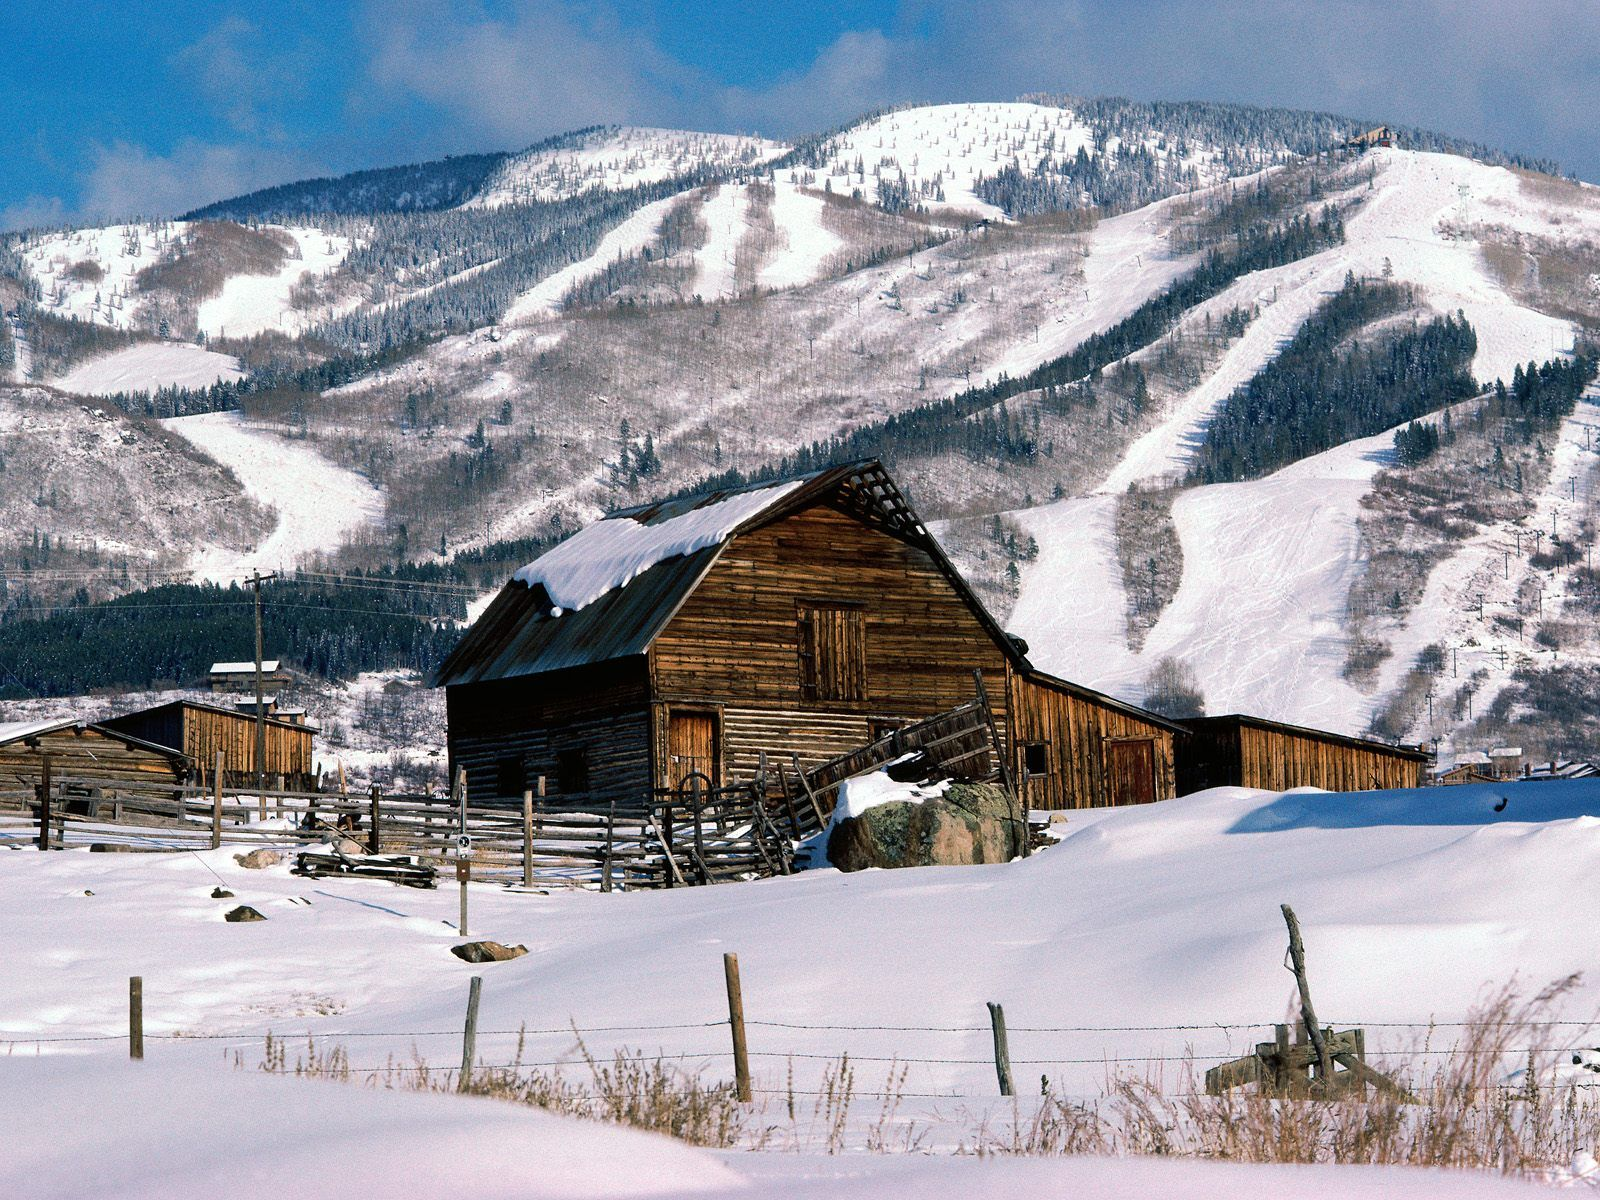 Winter Ranch picture Winter Ranch photo Winter Ranch wallpaper 1600x1200